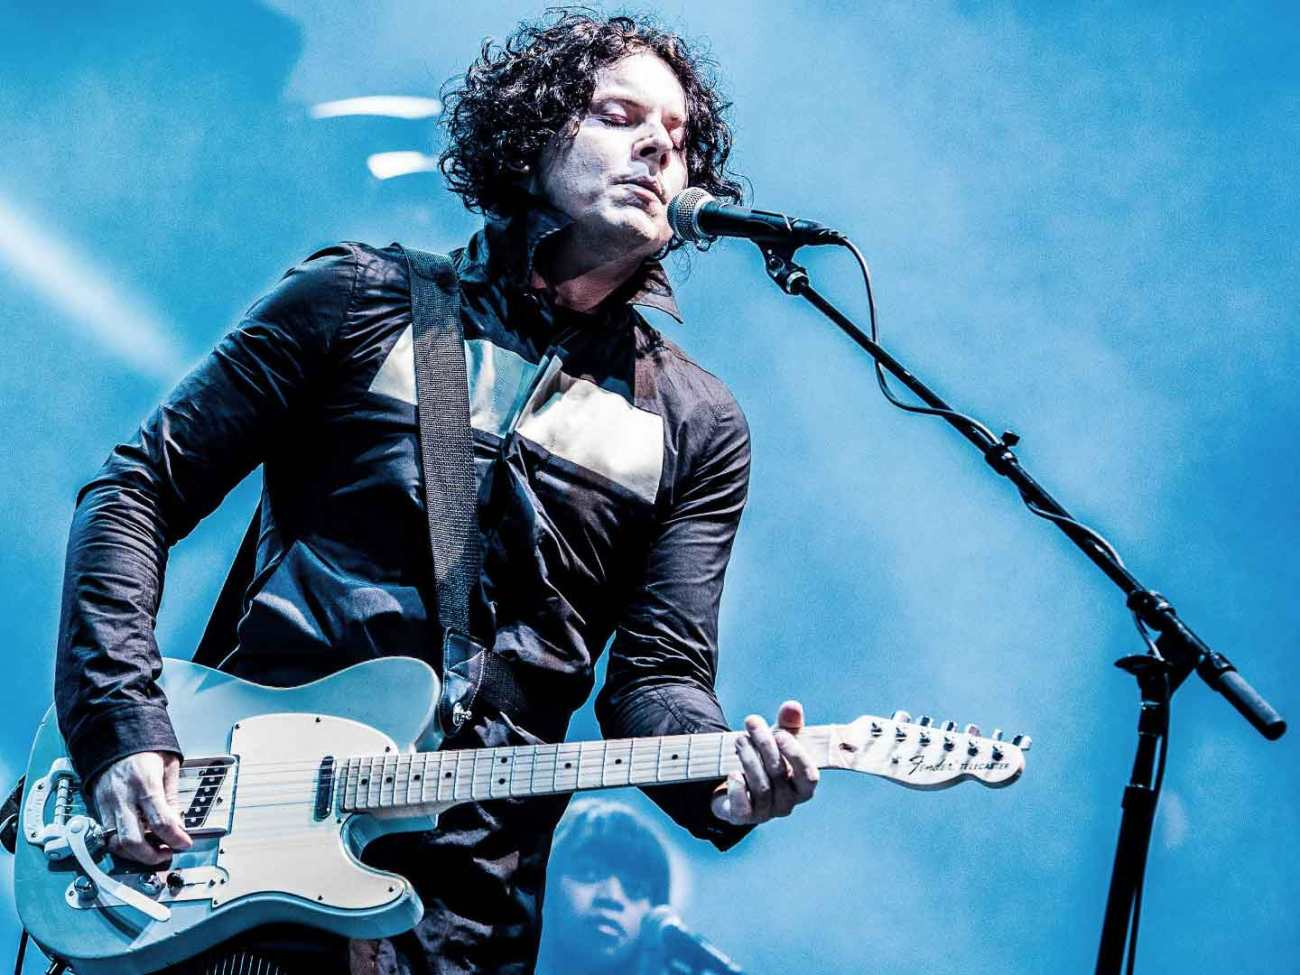 Jack White performing live